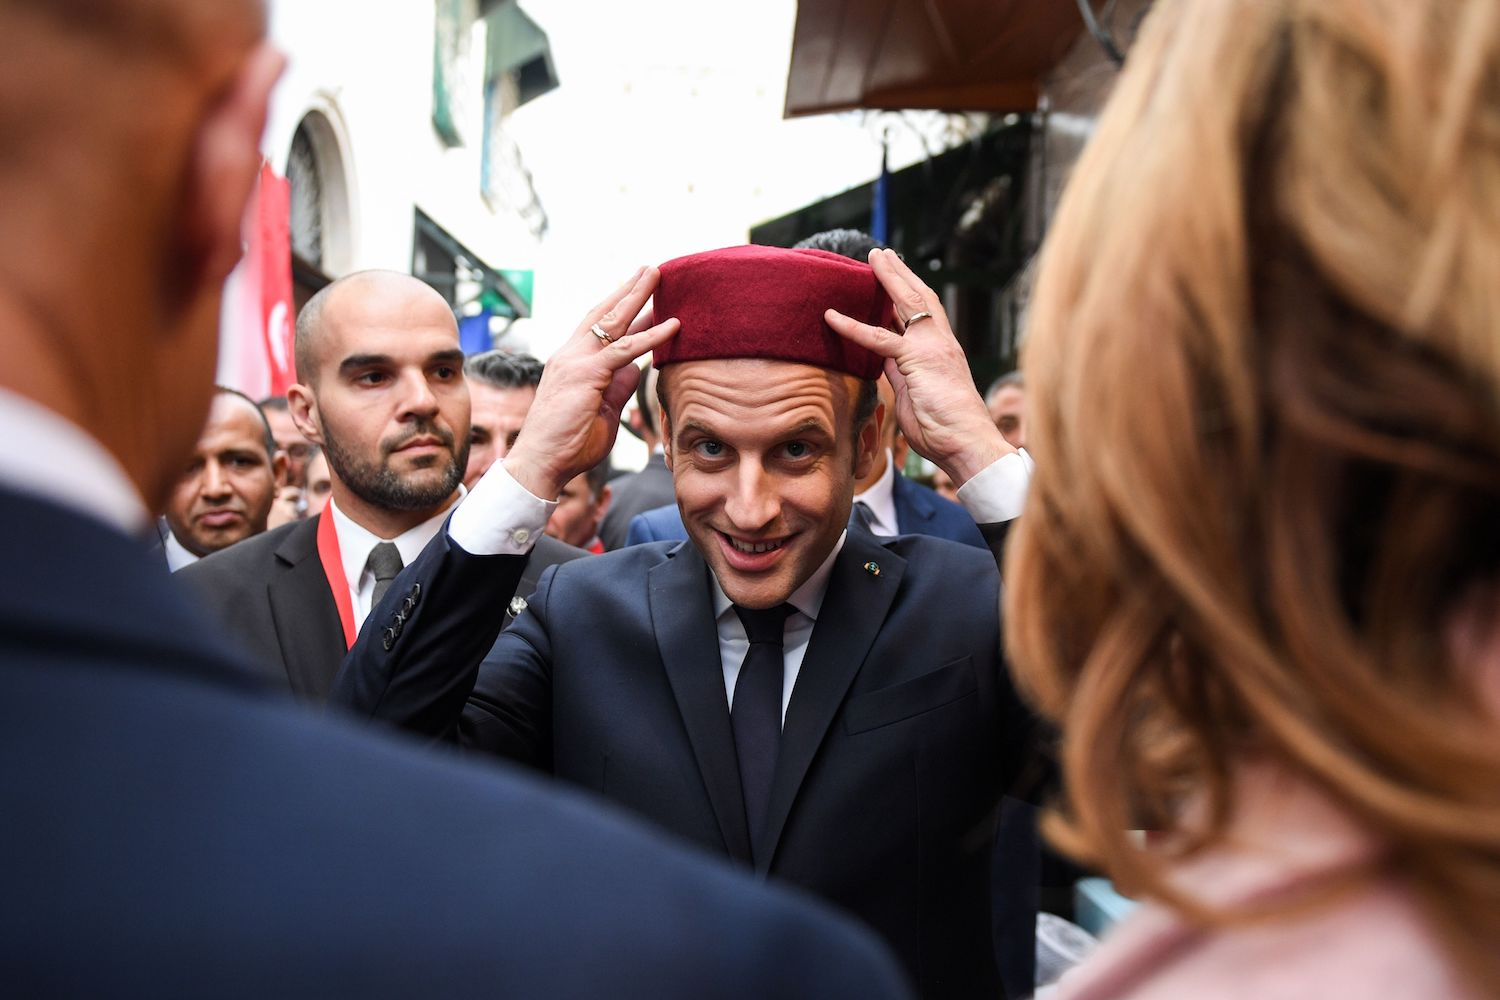 TOPSHOT - French President Emmanuel Macron (C) tries on a fez as he tours the Medina (old town) of the Tunisian capital Tunis on February 1, 2018, during his first state visit to the North African country. / AFP PHOTO / POOL / Eric FEFERBERG        (Photo credit should read ERIC FEFERBERG/AFP/Getty Images)